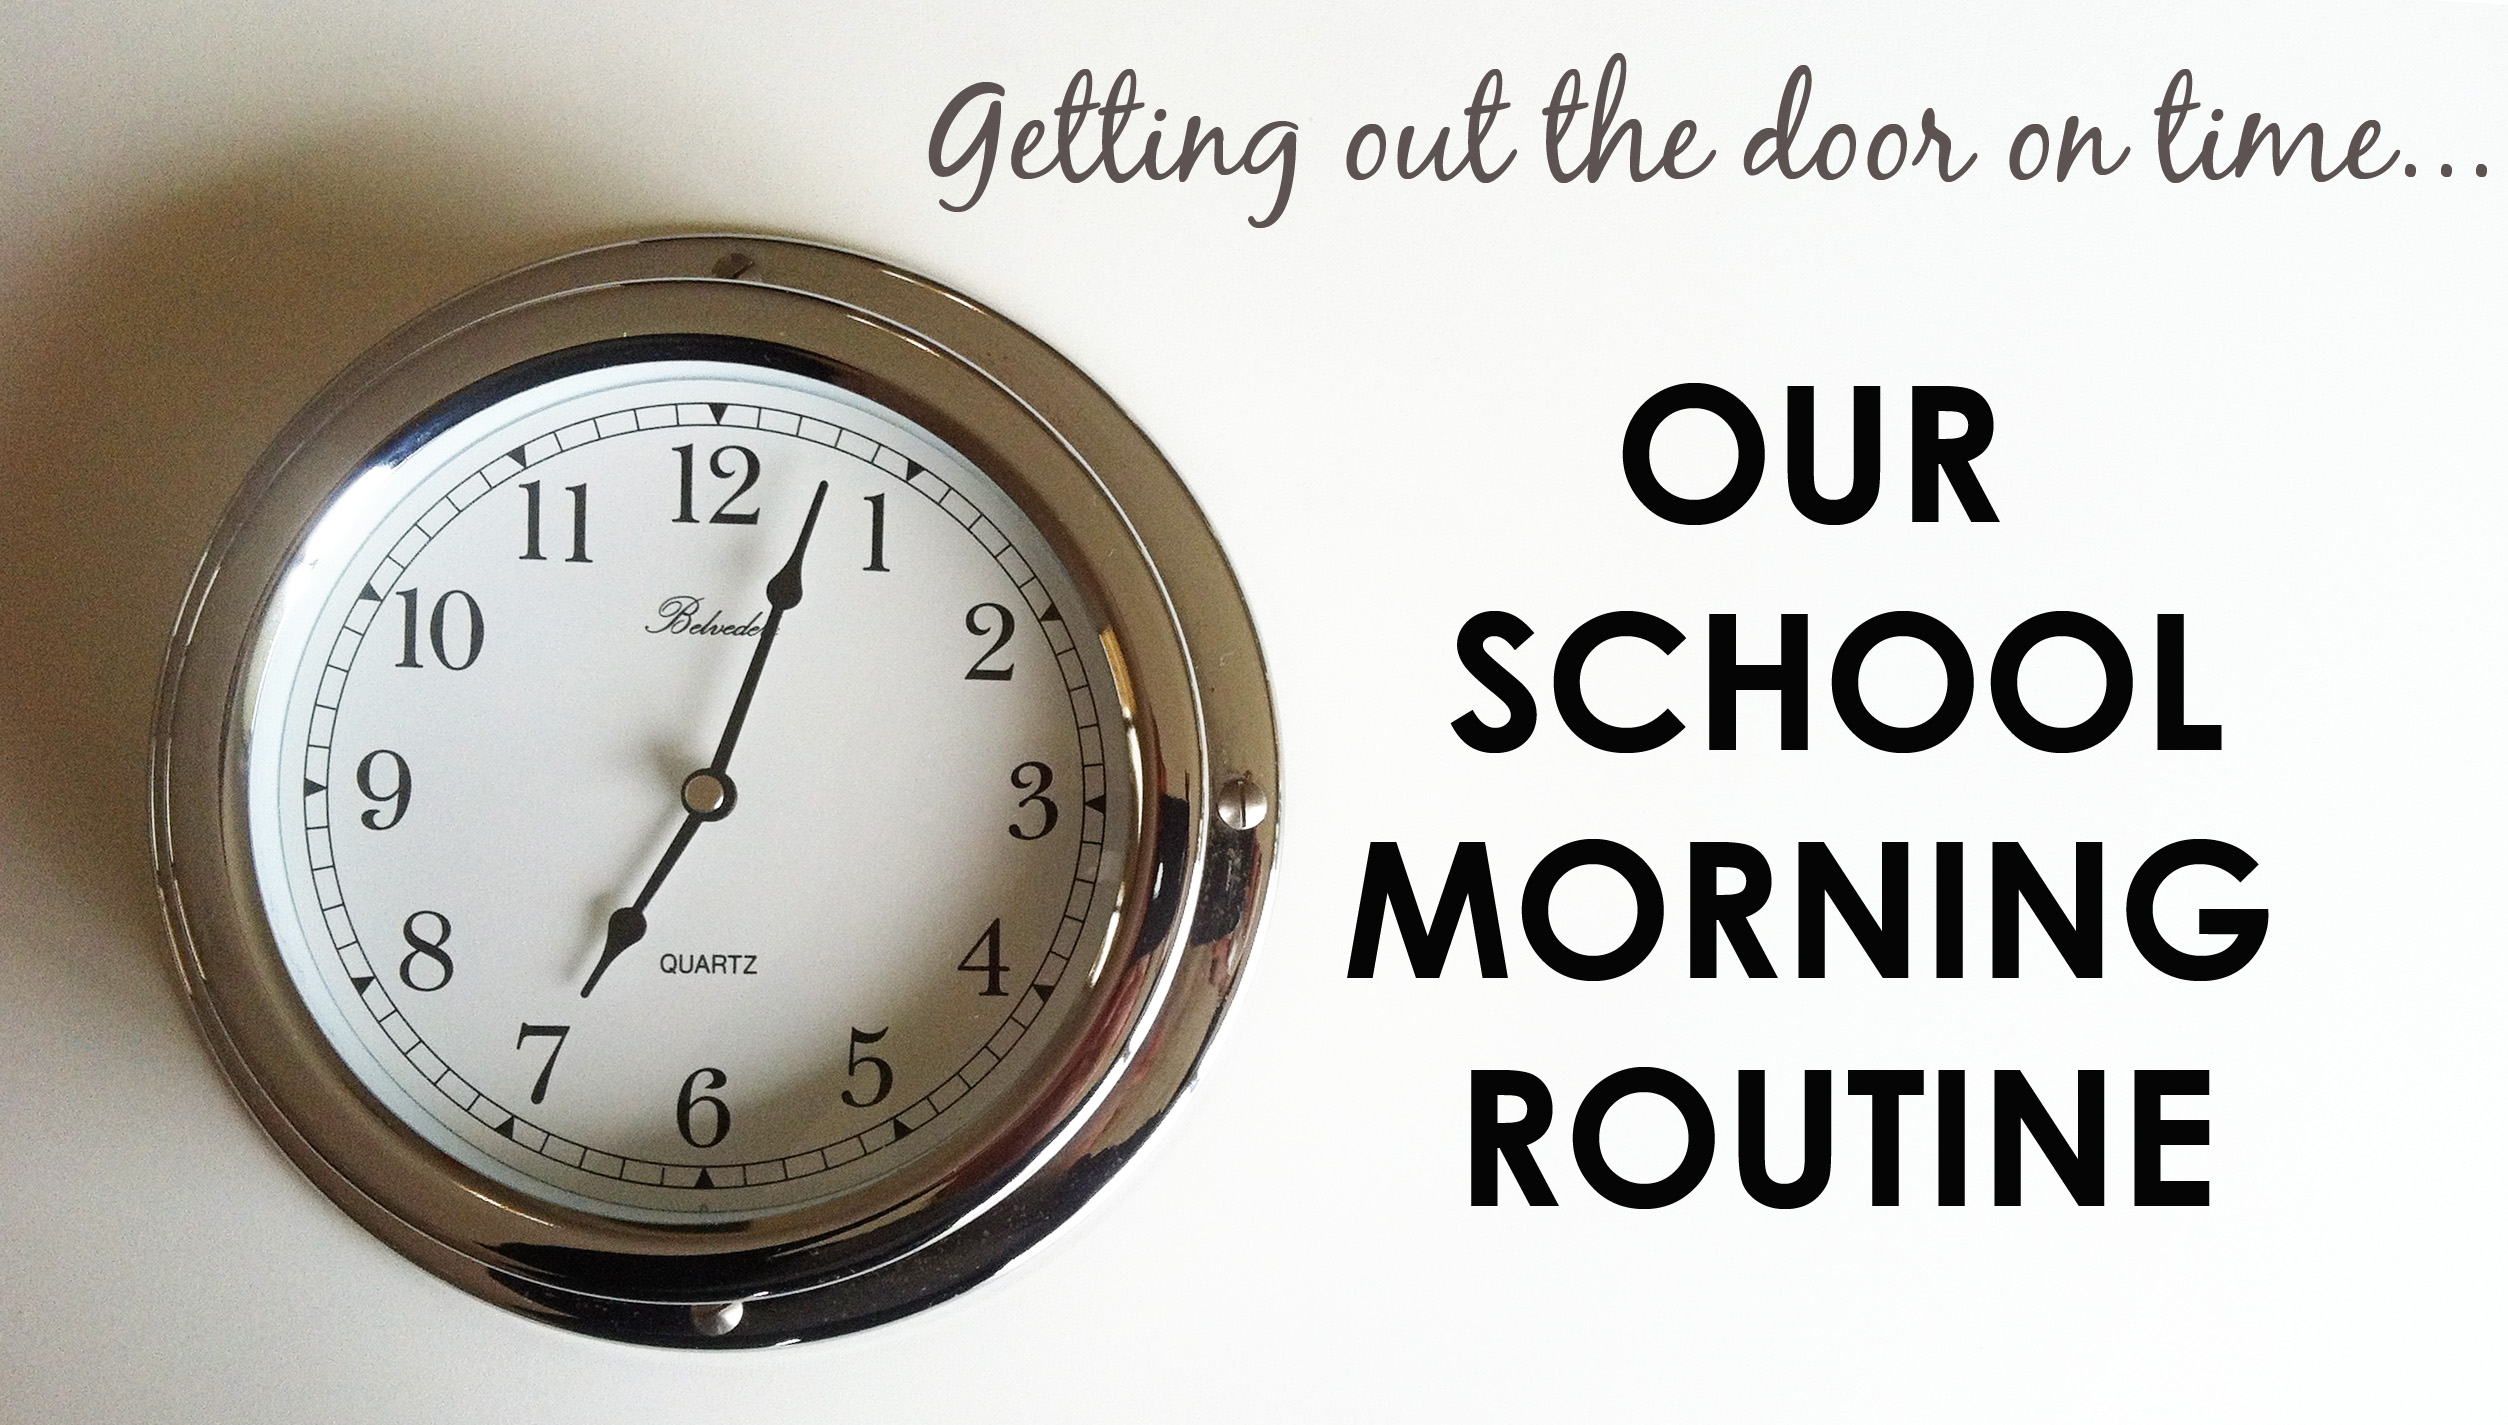 Our School Morning Routine